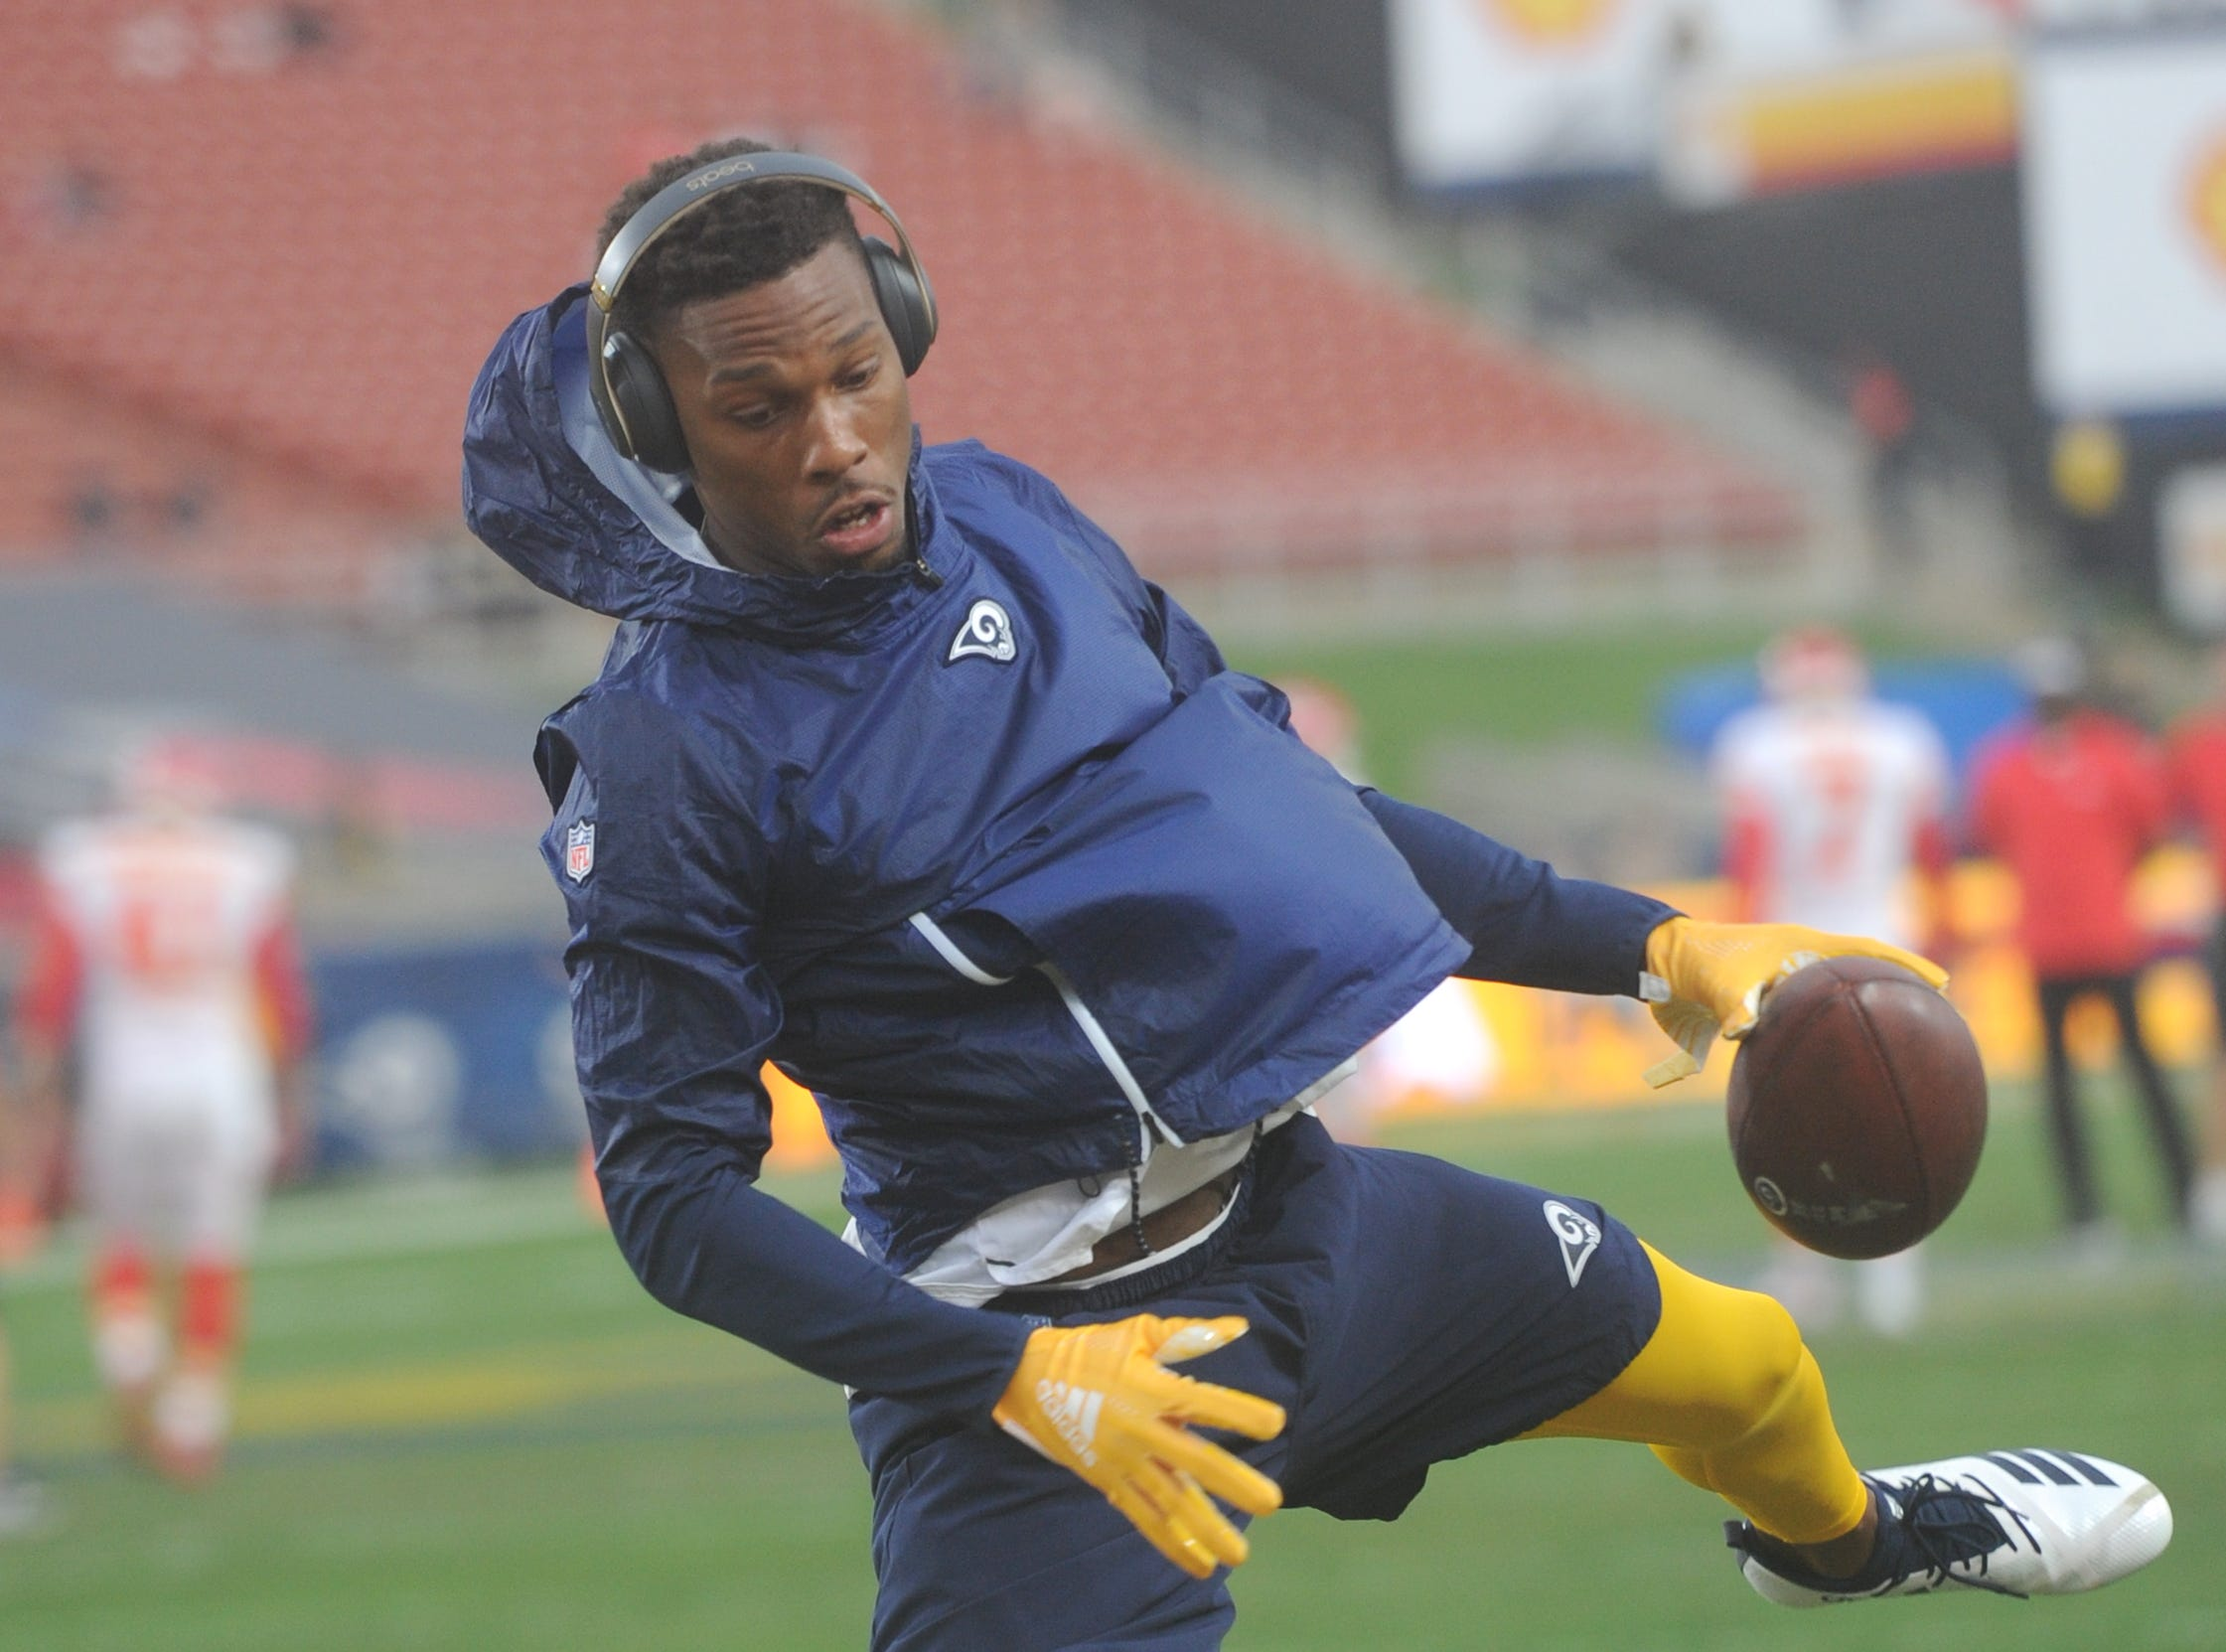 The Rams' Troy Hill warms up before the game with the Chiefs at the Coliseum before the Monday night game.